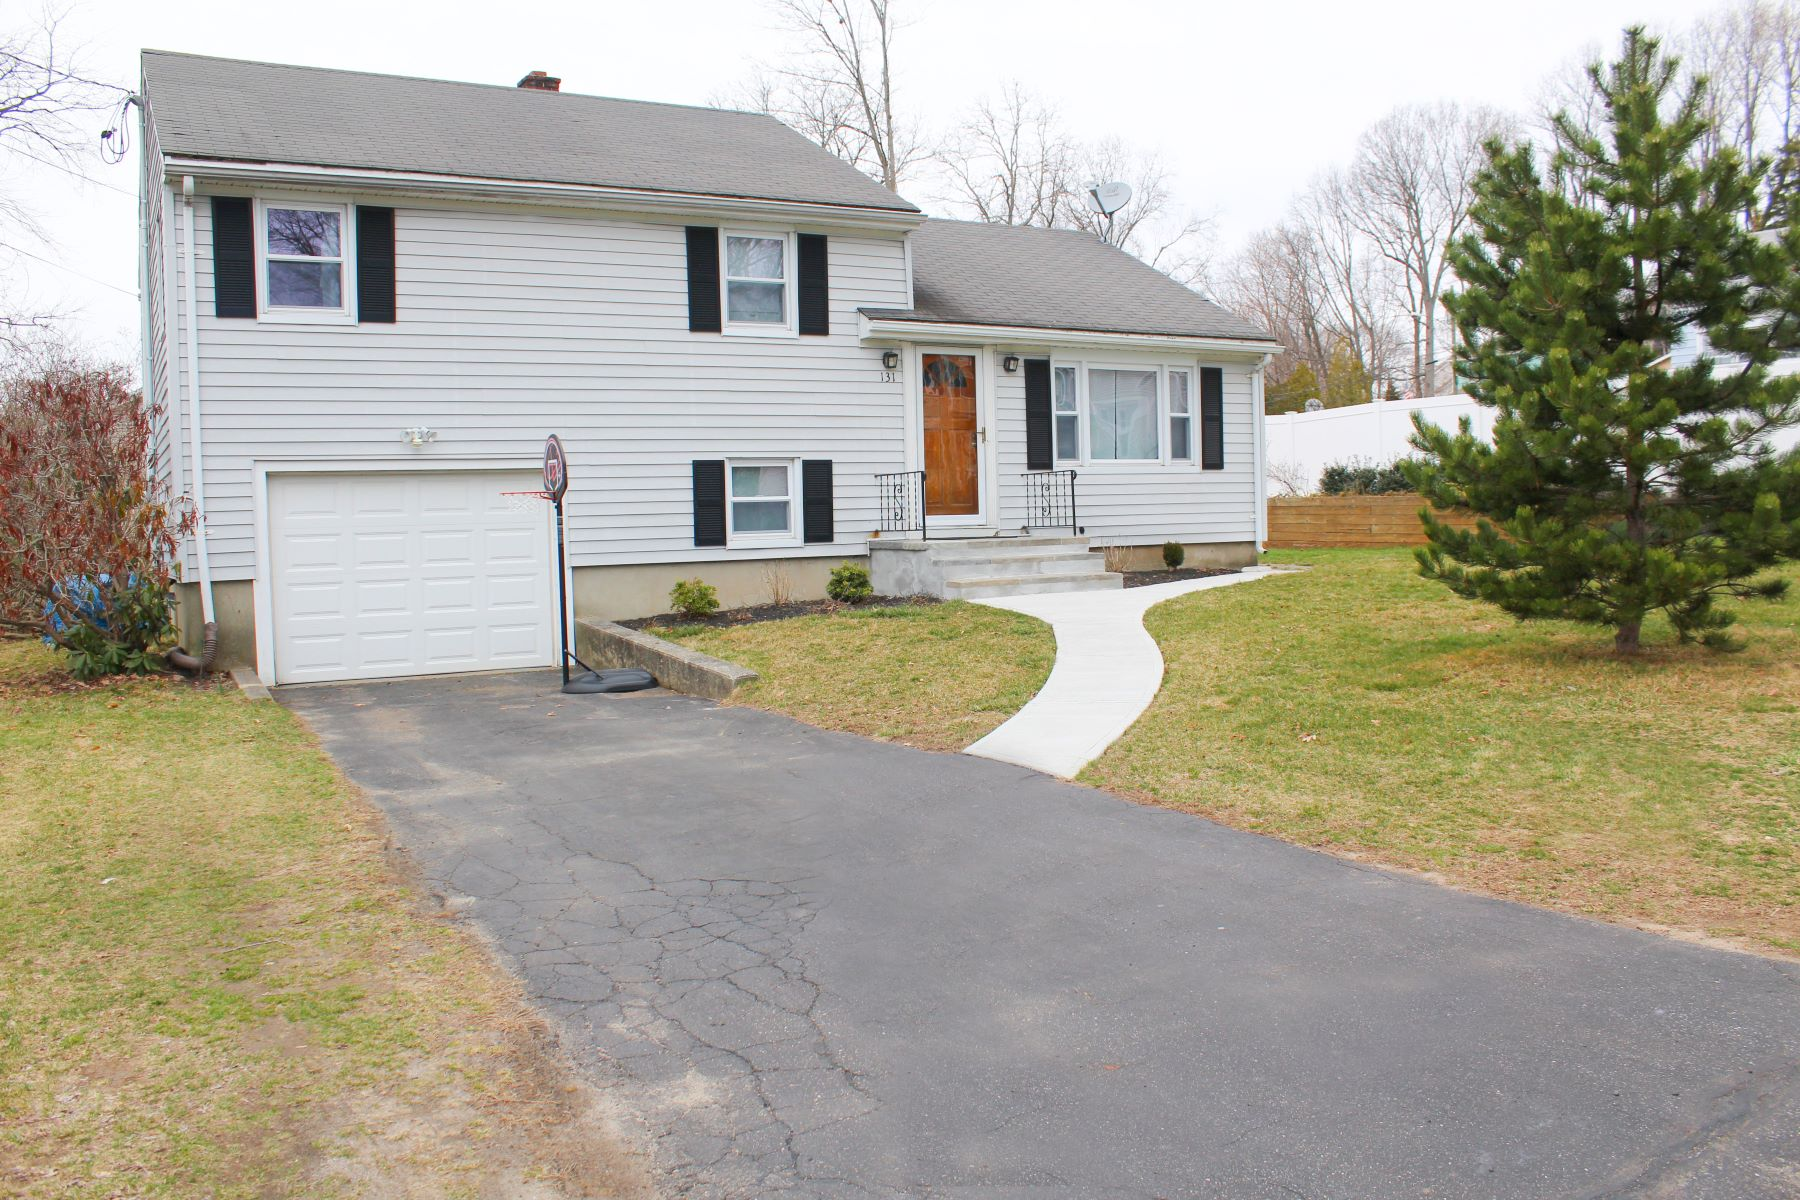 Single Family Homes のために 売買 アット 131 Bryan Hill Road 131 Bryan Hill Rd, Milford, コネチカット 06460 アメリカ